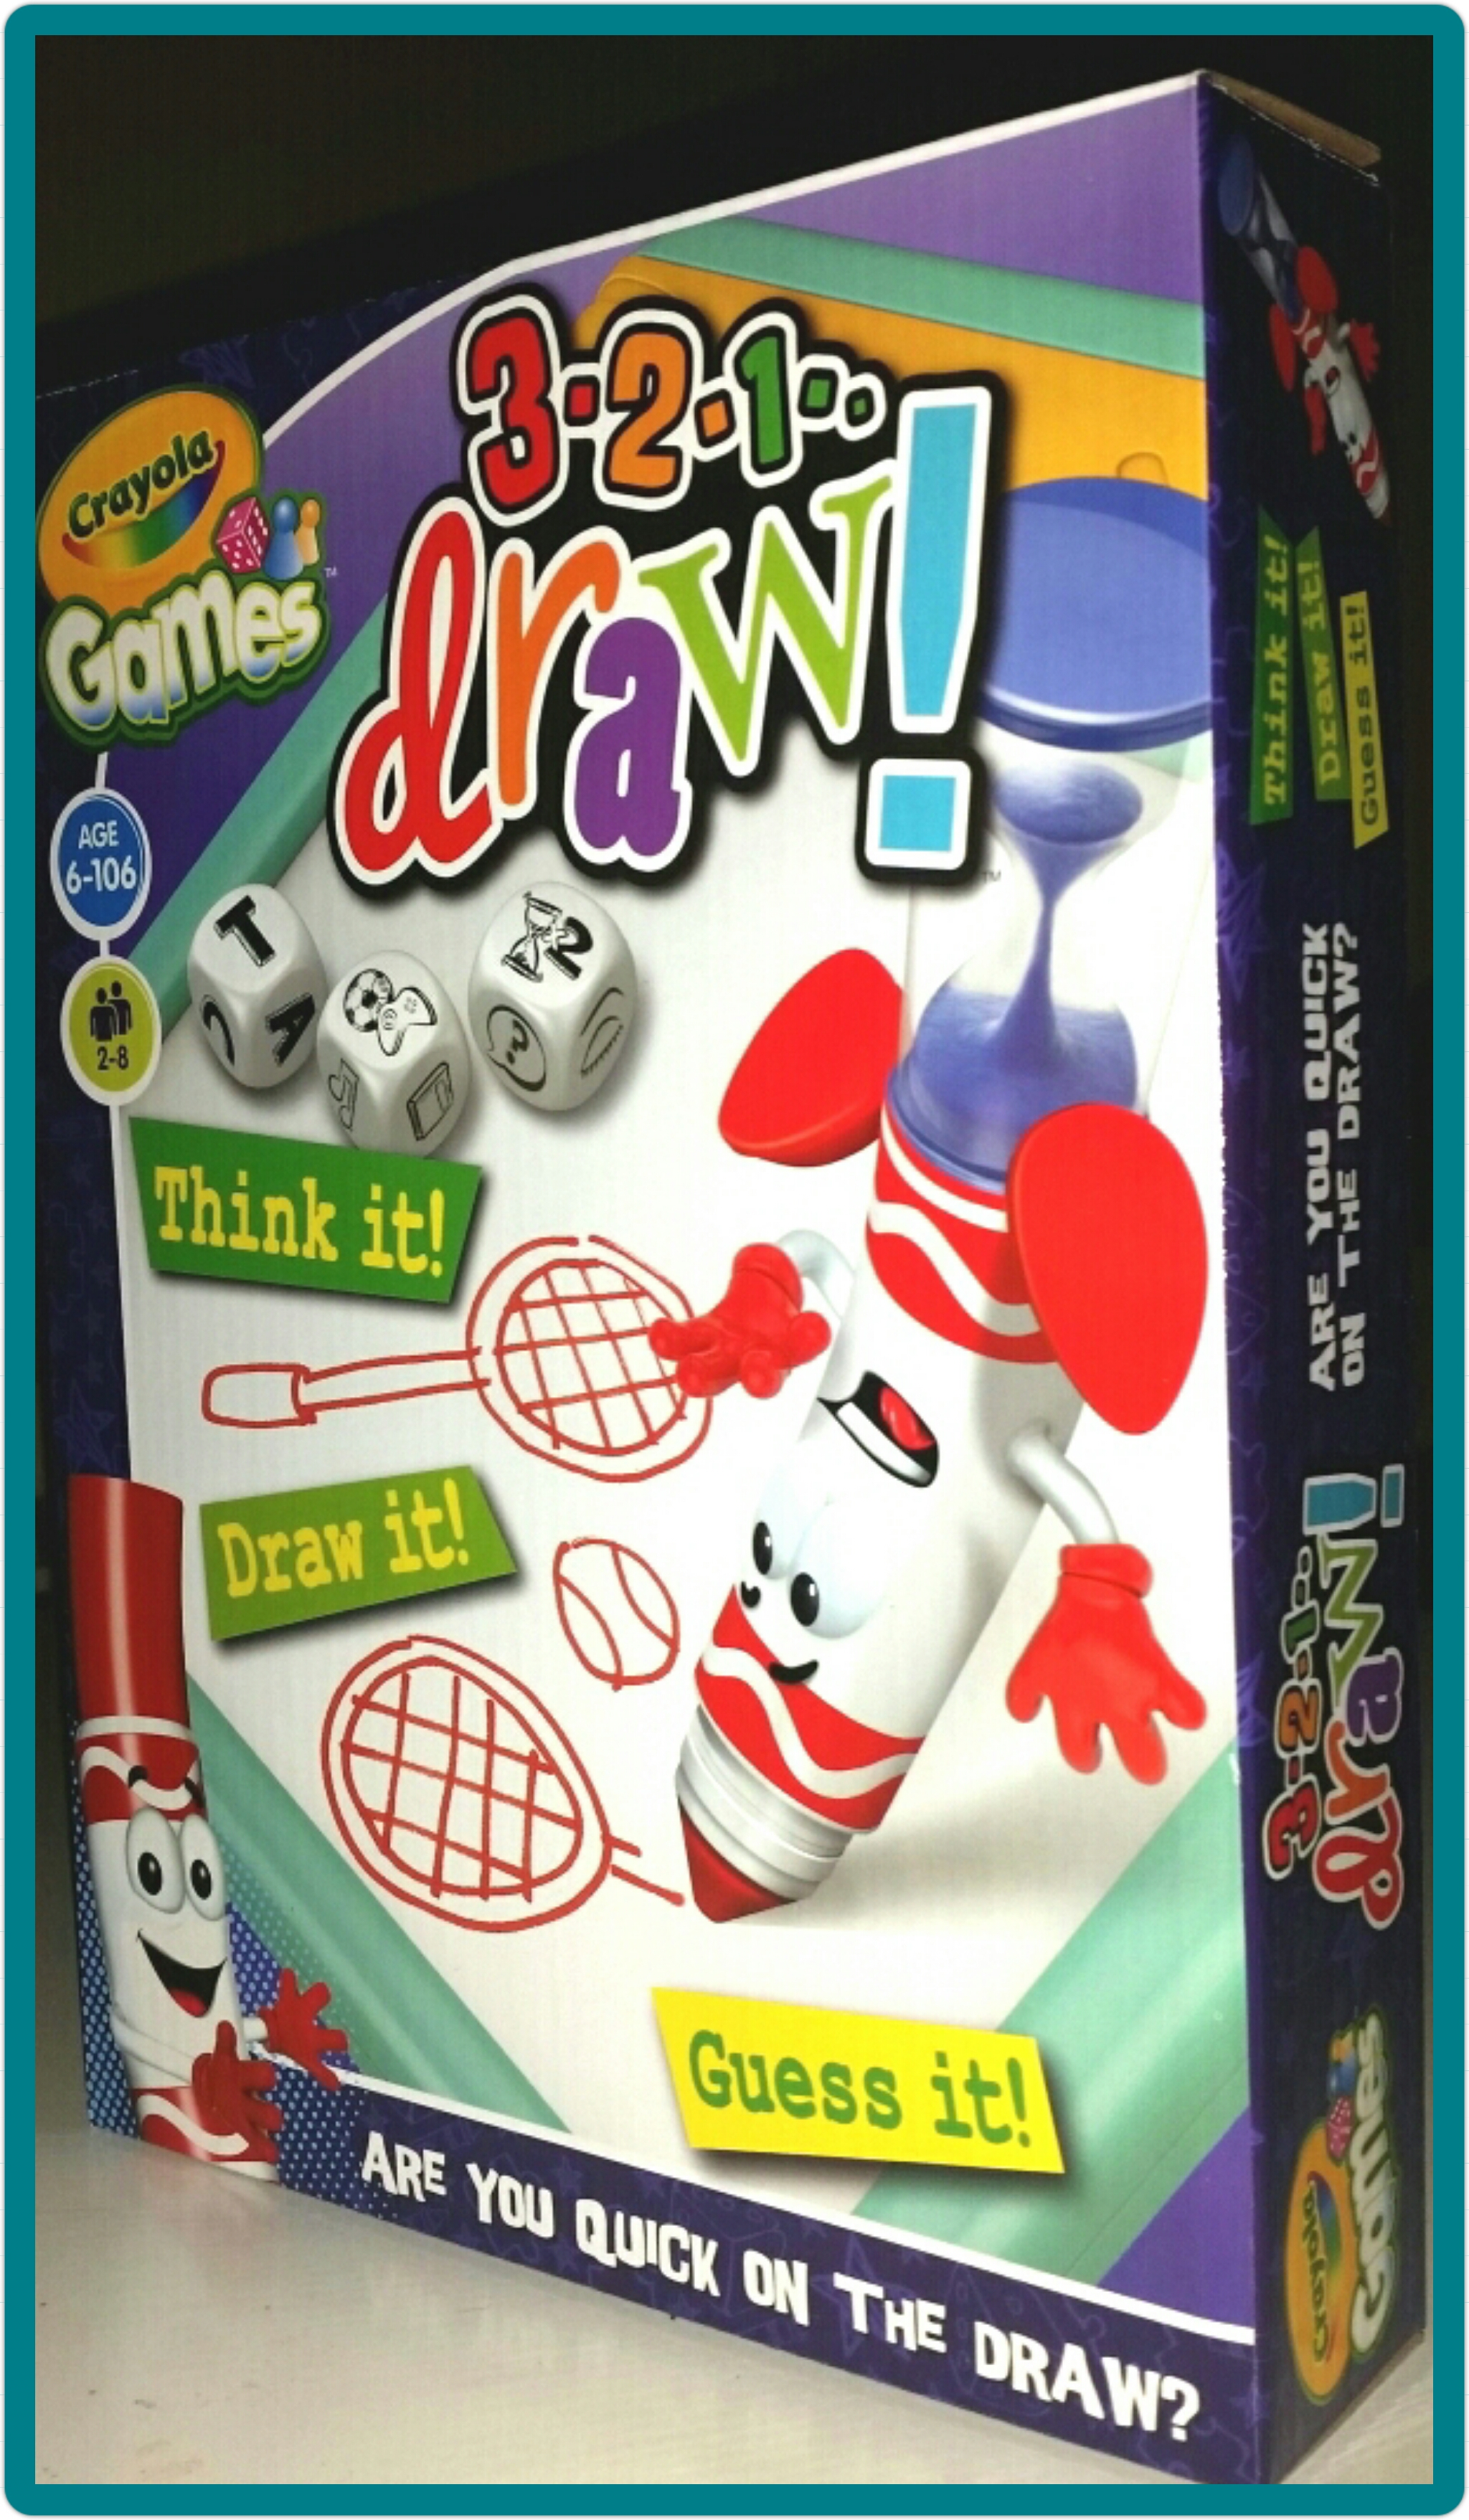 Review: Crayola Games - 3, 2, 1 Draw! - Living Life Our Way